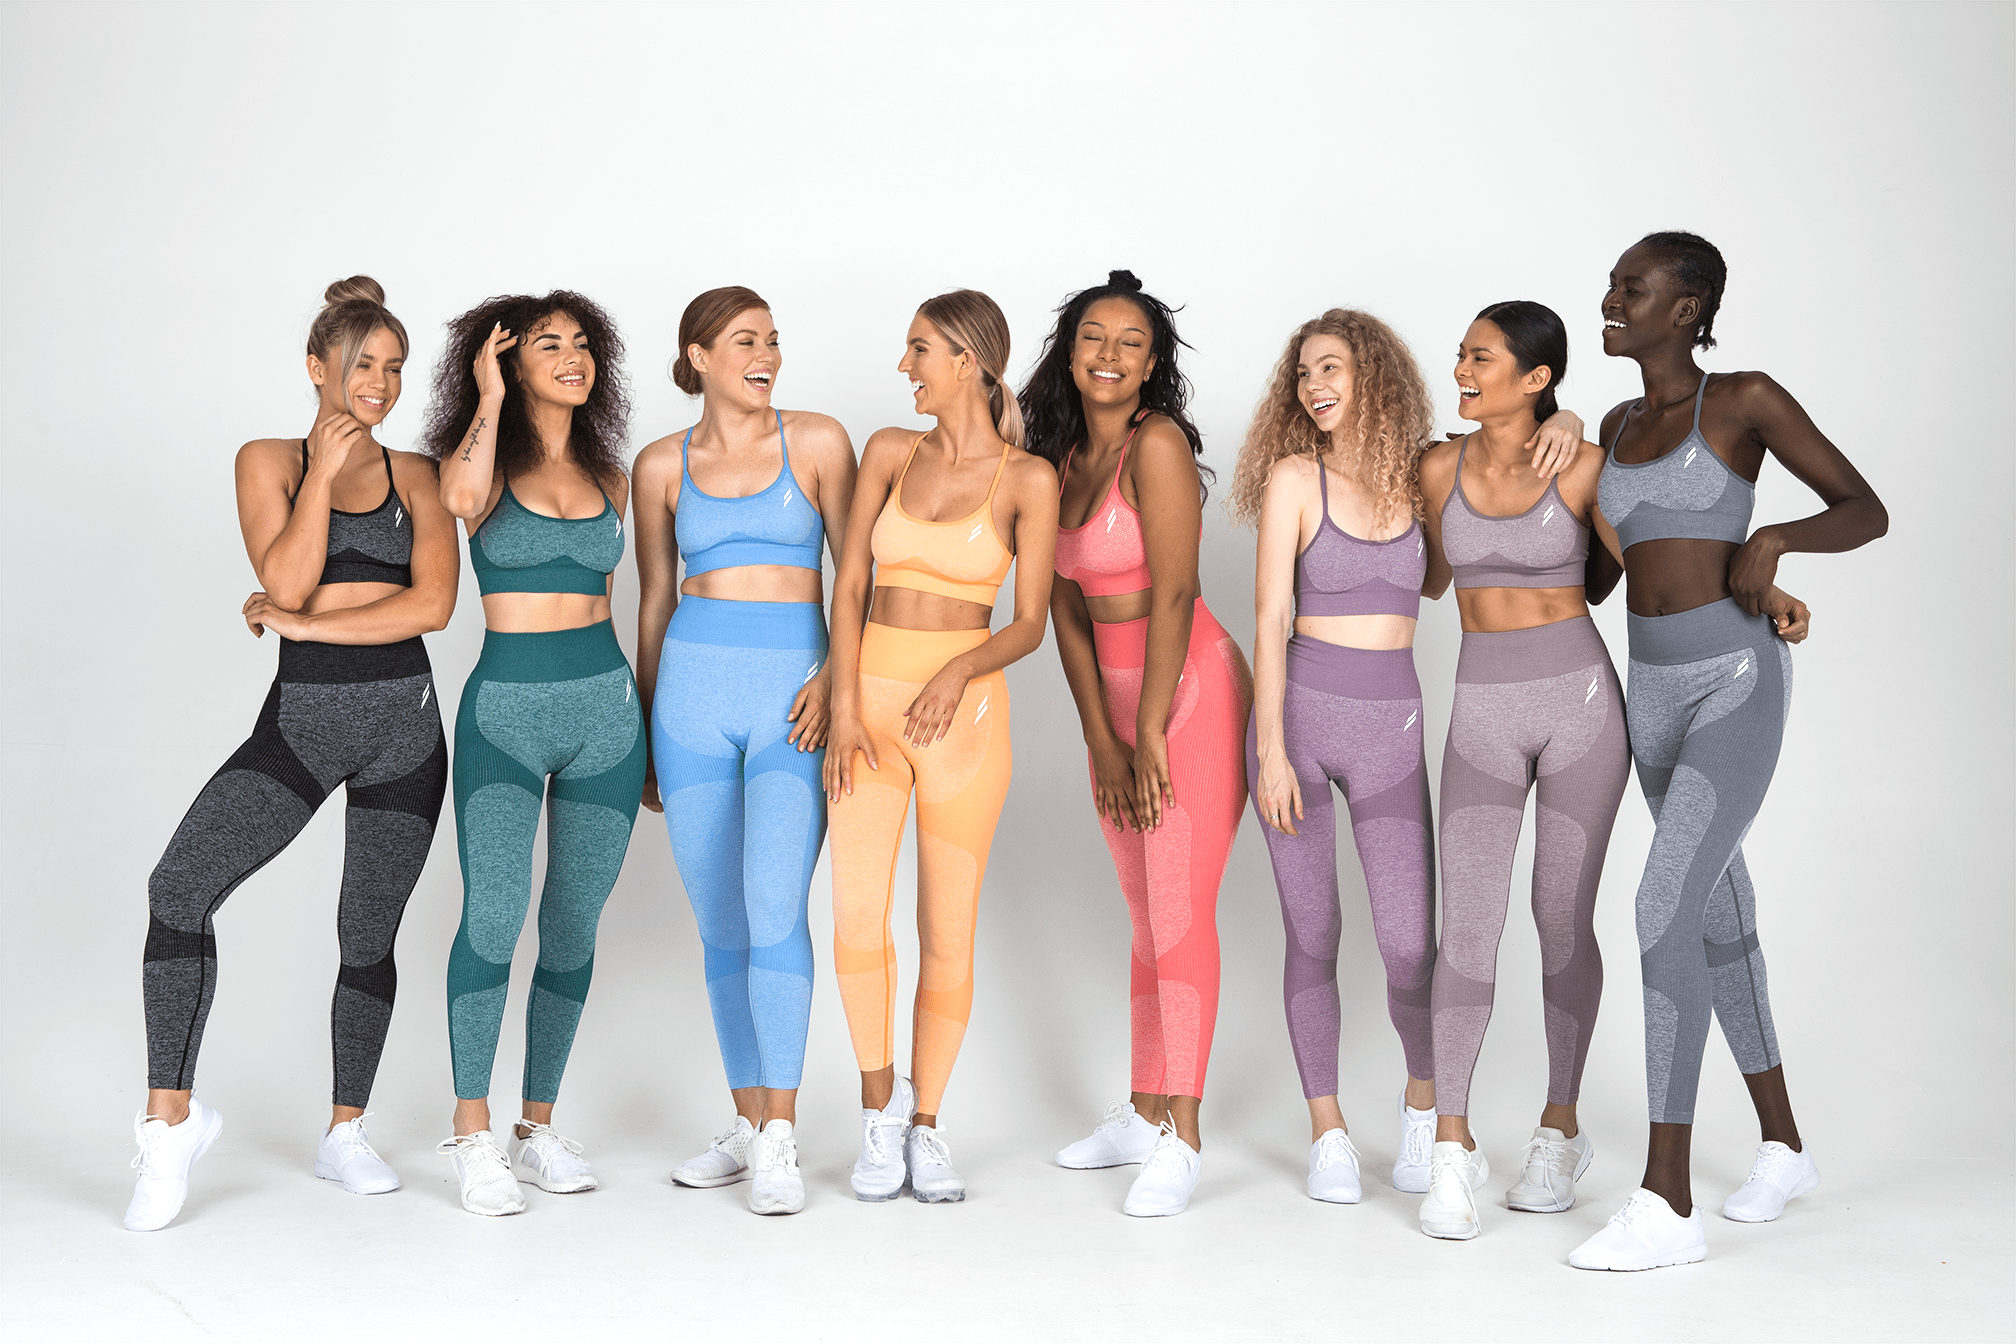 SEAMLESS IS BACK AND BETTER THAN EVER!